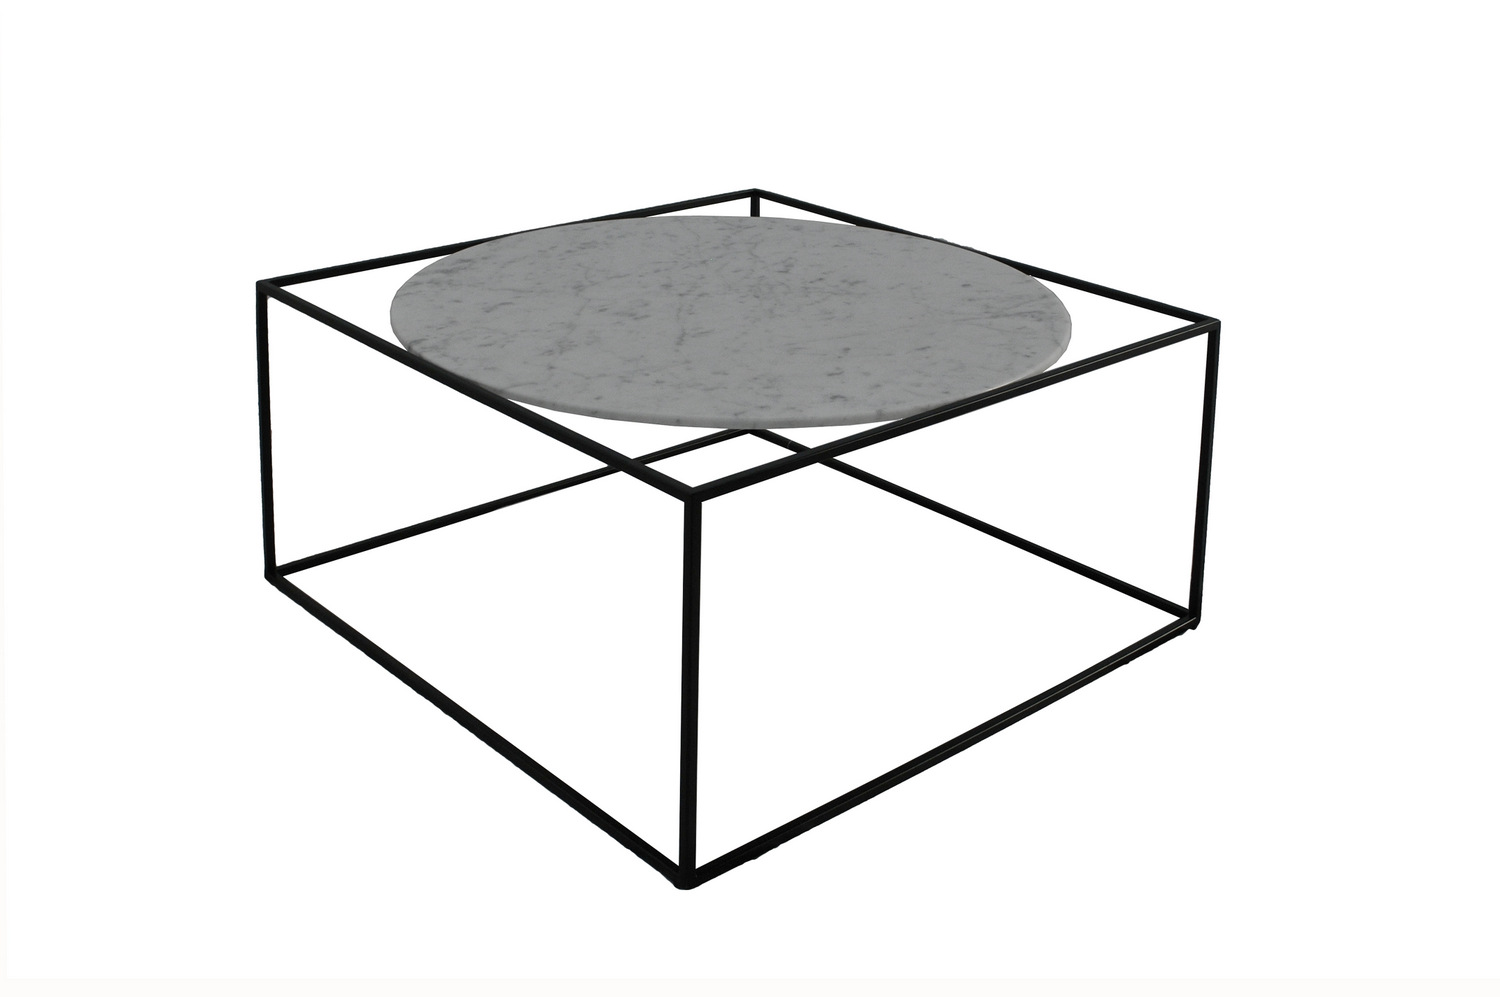 G3 marble coffee table by roche bobois design johan lindst n - Table roche et bobois ...